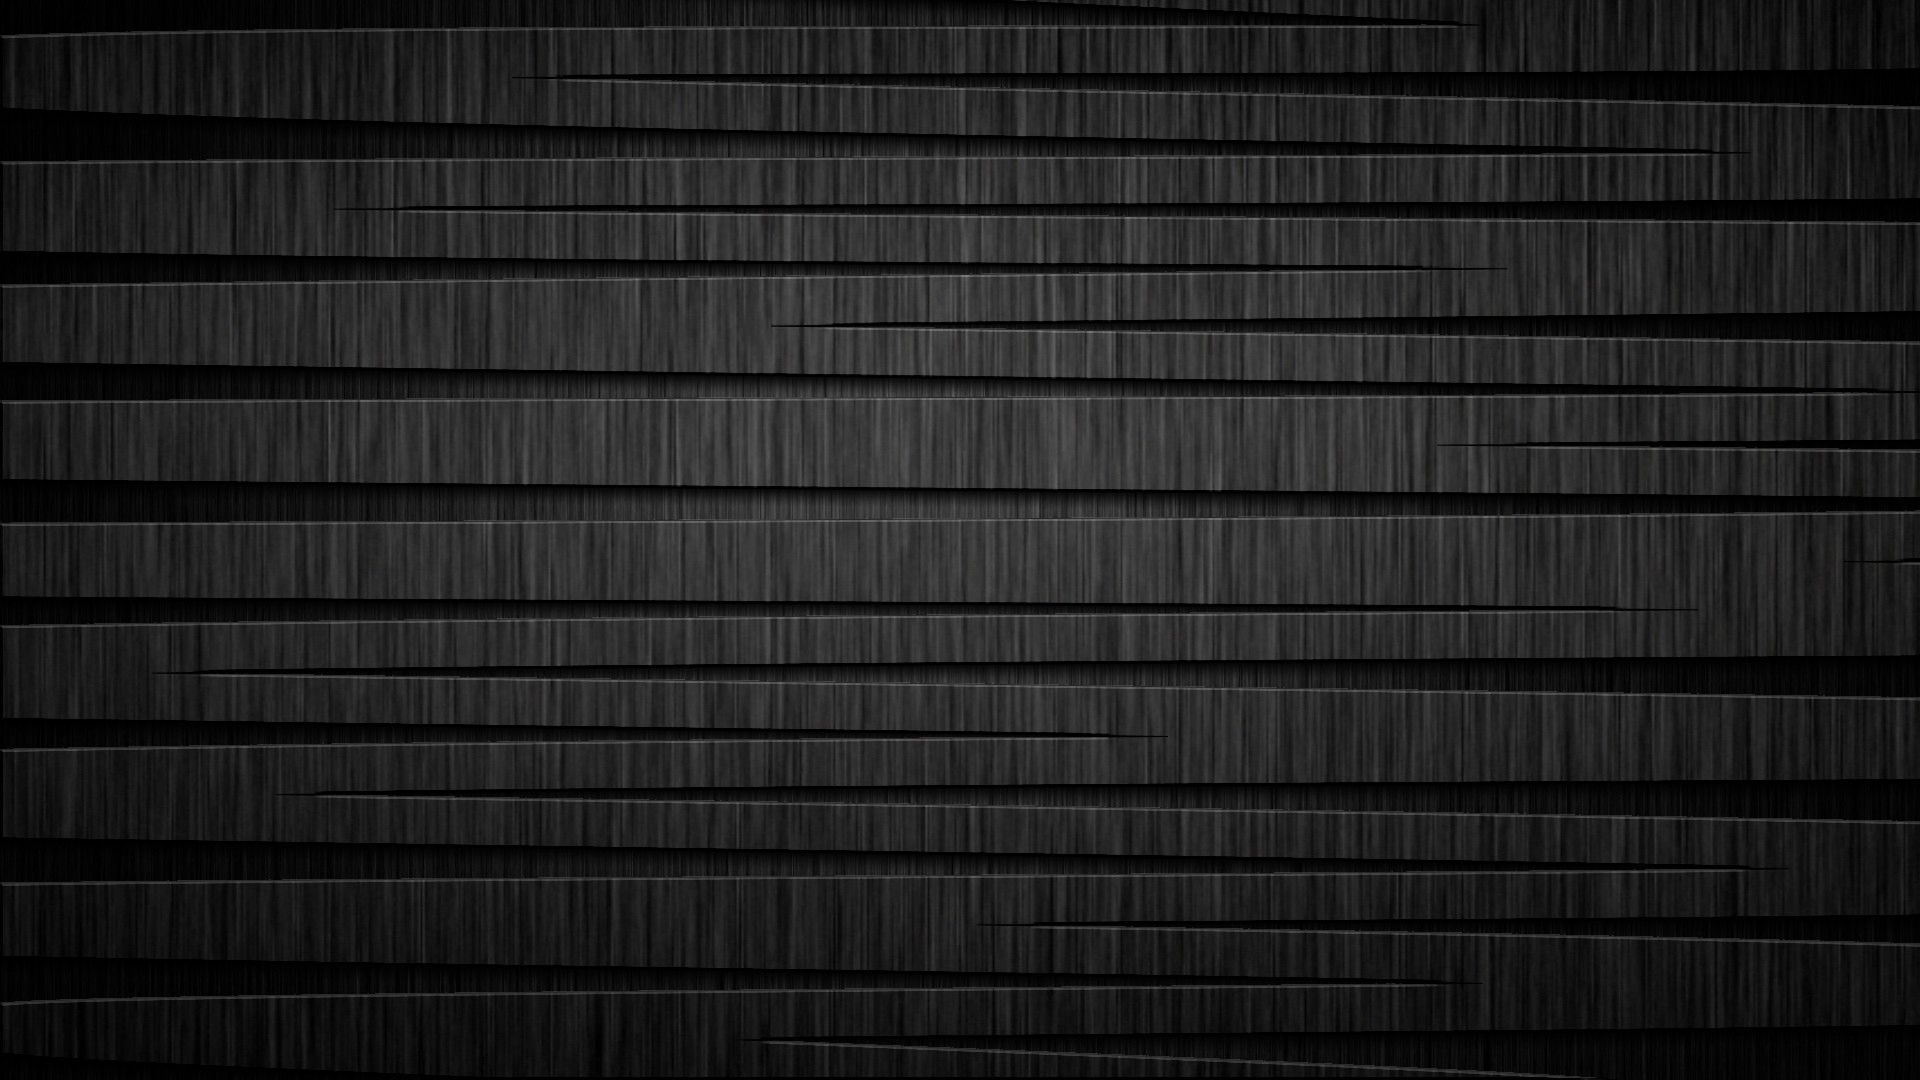 Awesome Bedroom Wallpaper Texture Black As 40 Grey Background And For Designer Web Design